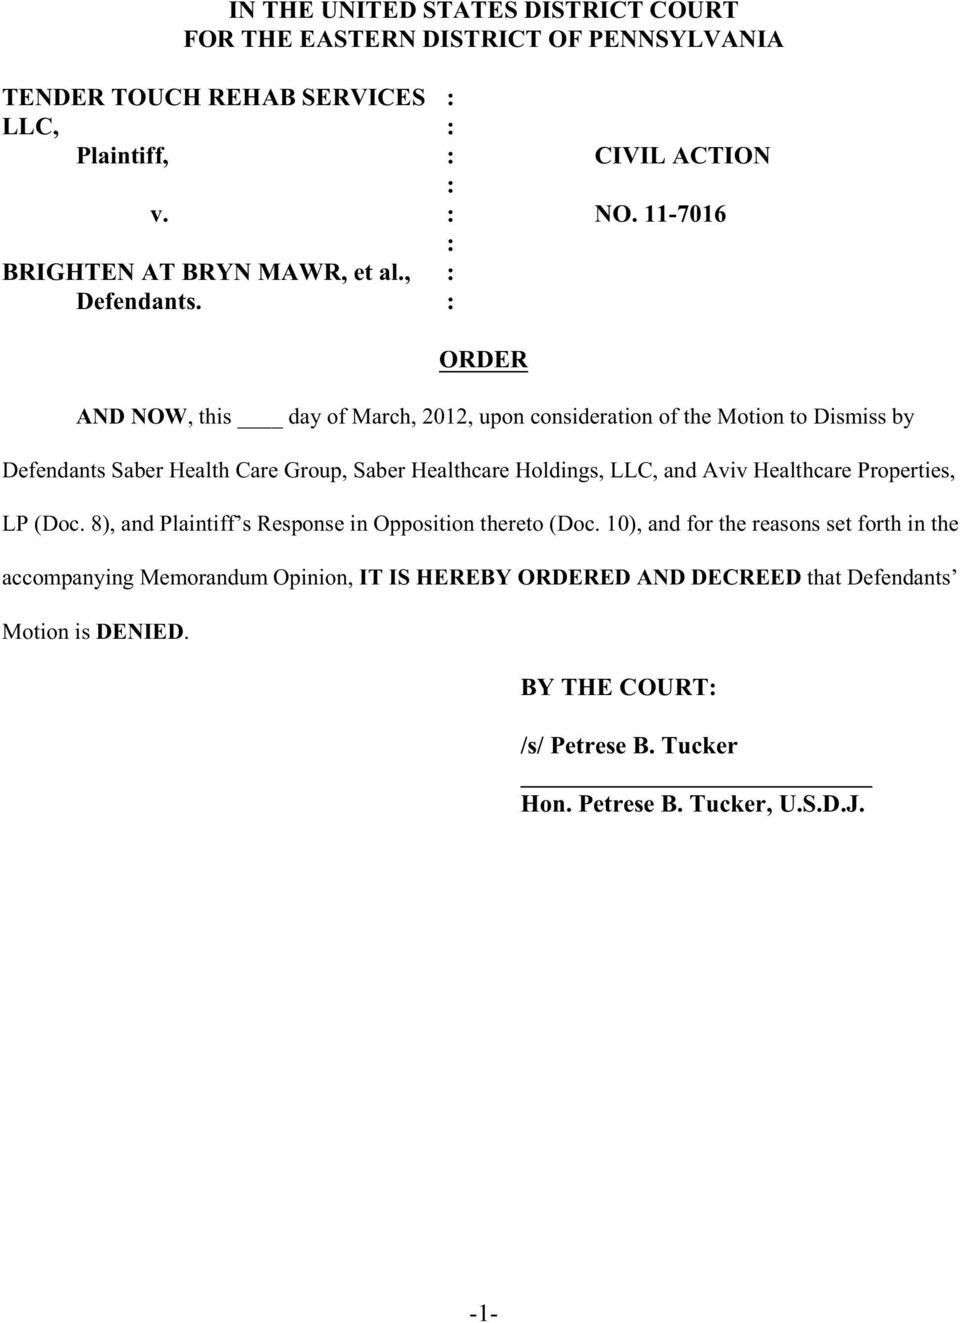 ORDER AND NOW, this day of March, 2012, upon consideration of the Motion to Dismiss by Defendants Saber Health Care Group, Saber Healthcare Holdings, LLC, and Aviv